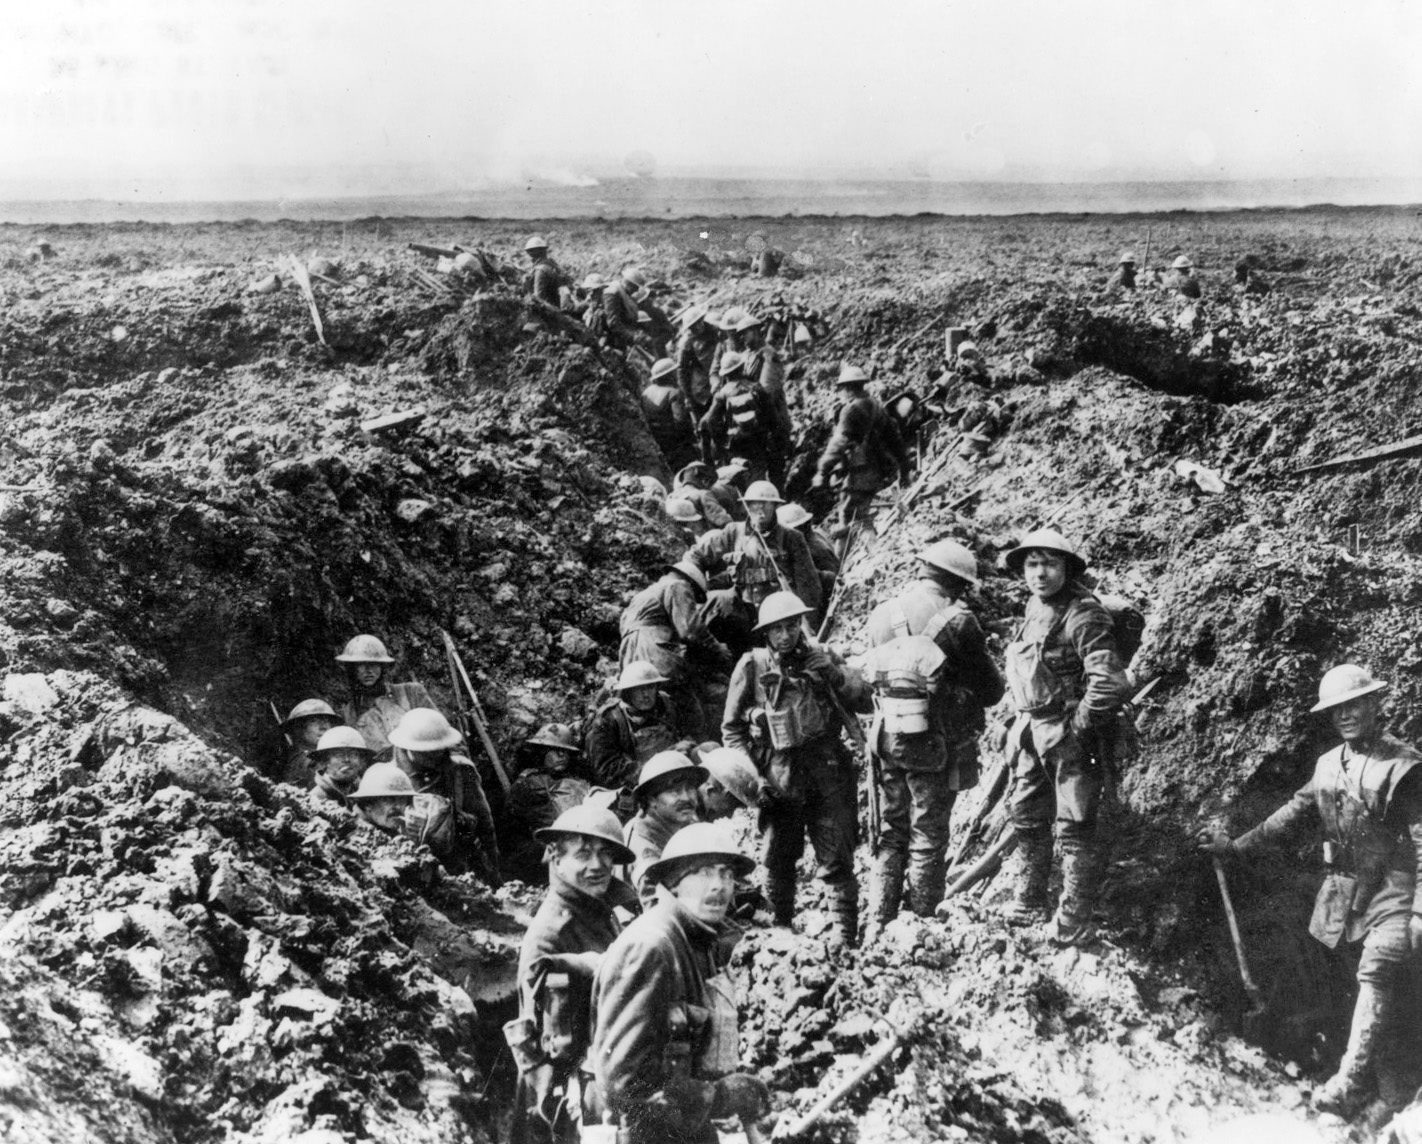 Canadian soldiers man the trenches at Vimy Ridge in 1917 during the First World War. THE CANADIAN PRESS